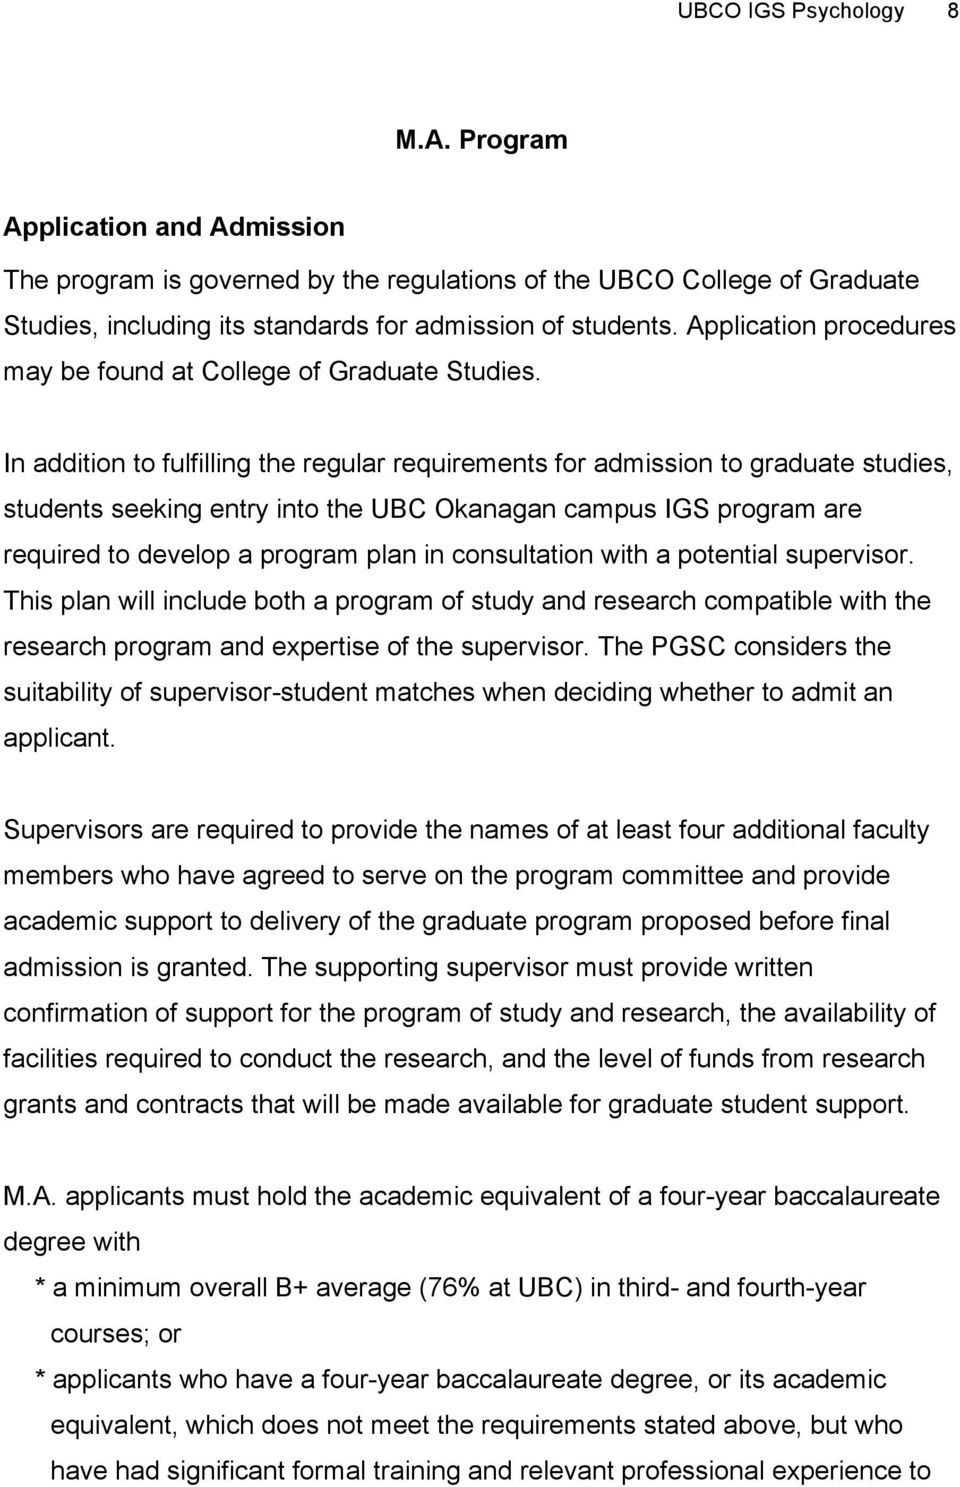 In addition to fulfilling the regular requirements for admission to graduate studies, students seeking entry into the UBC Okanagan campus IGS program are required to develop a program plan in